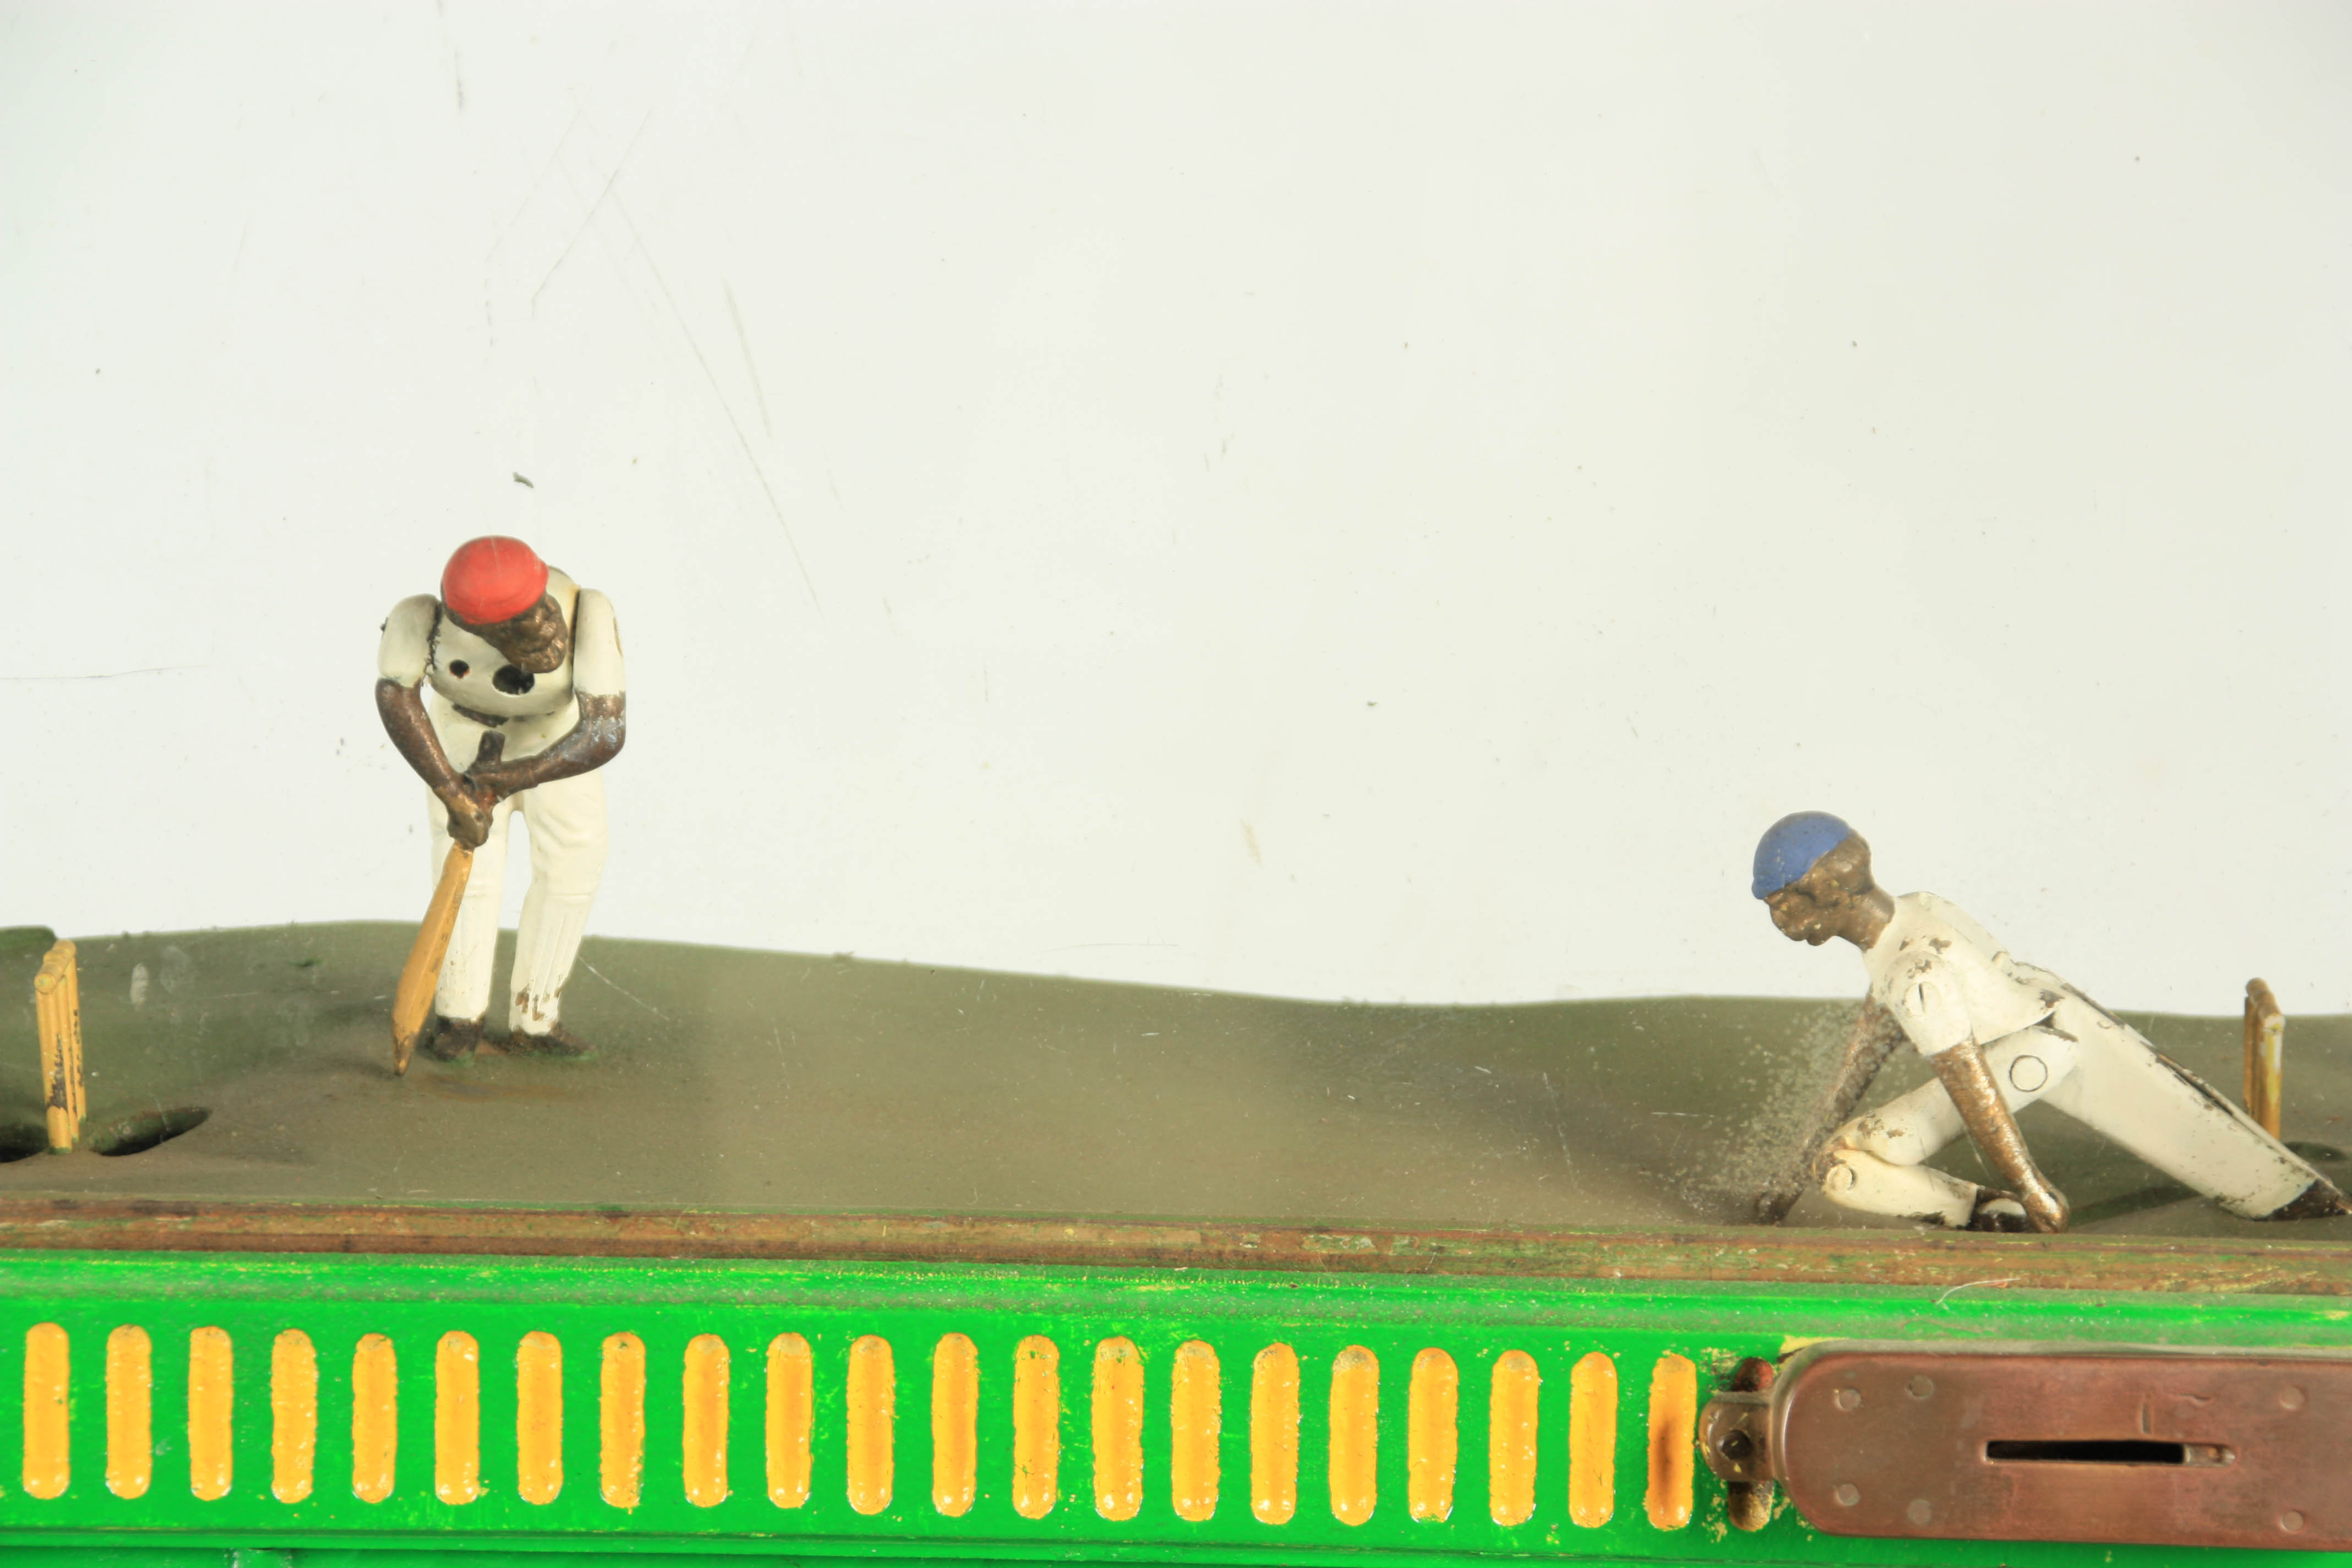 A LATE 19TH CENTURY PAINTED CAST IRON 'PENNY IN THE SLOT' CRICKET ARCADE MACHINE with tile effect - Image 8 of 14